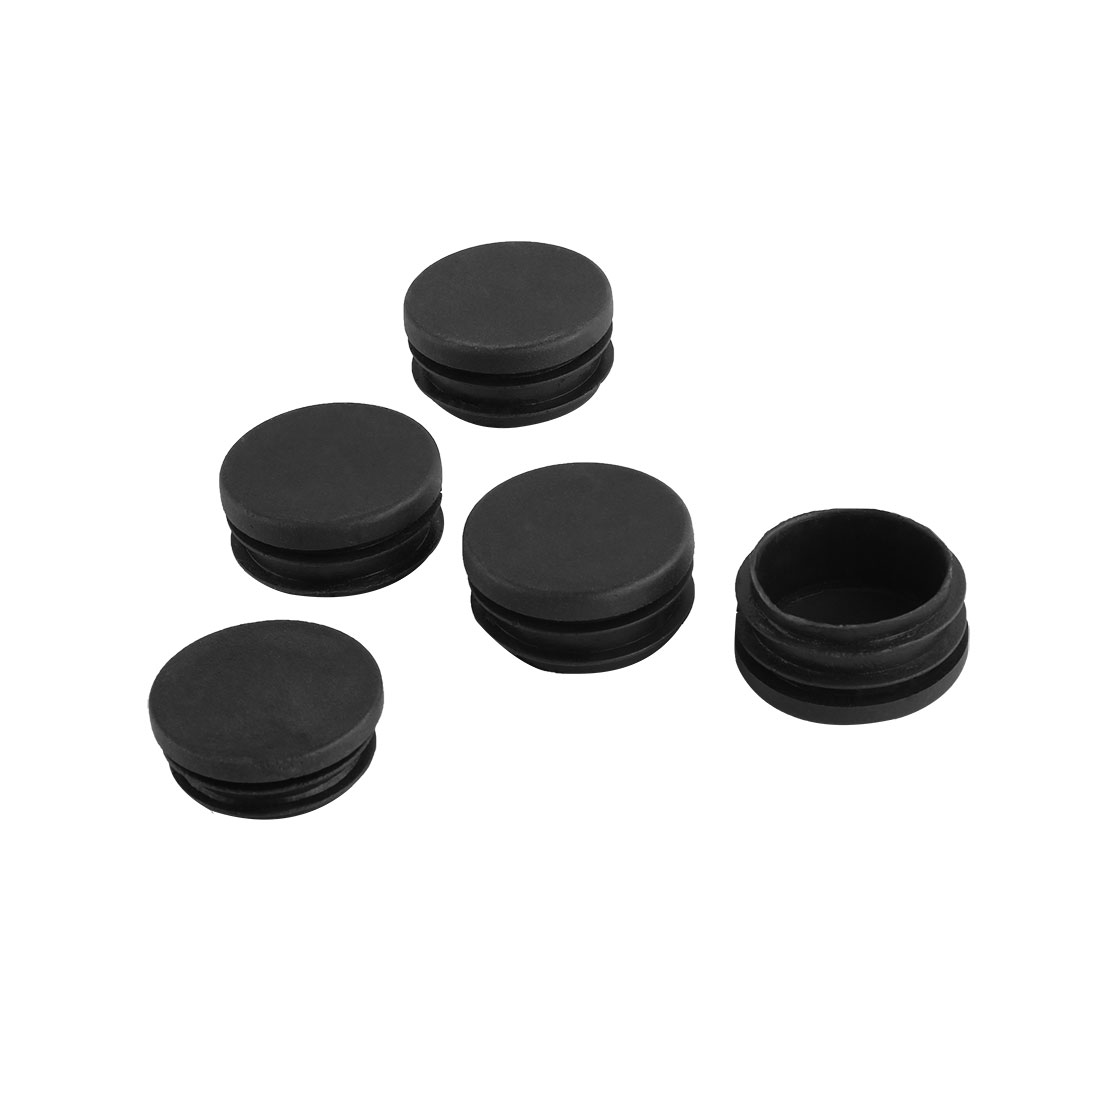 5 x Black Plastic 40mm Dia Round Tubing Tube Insert Caps Covers